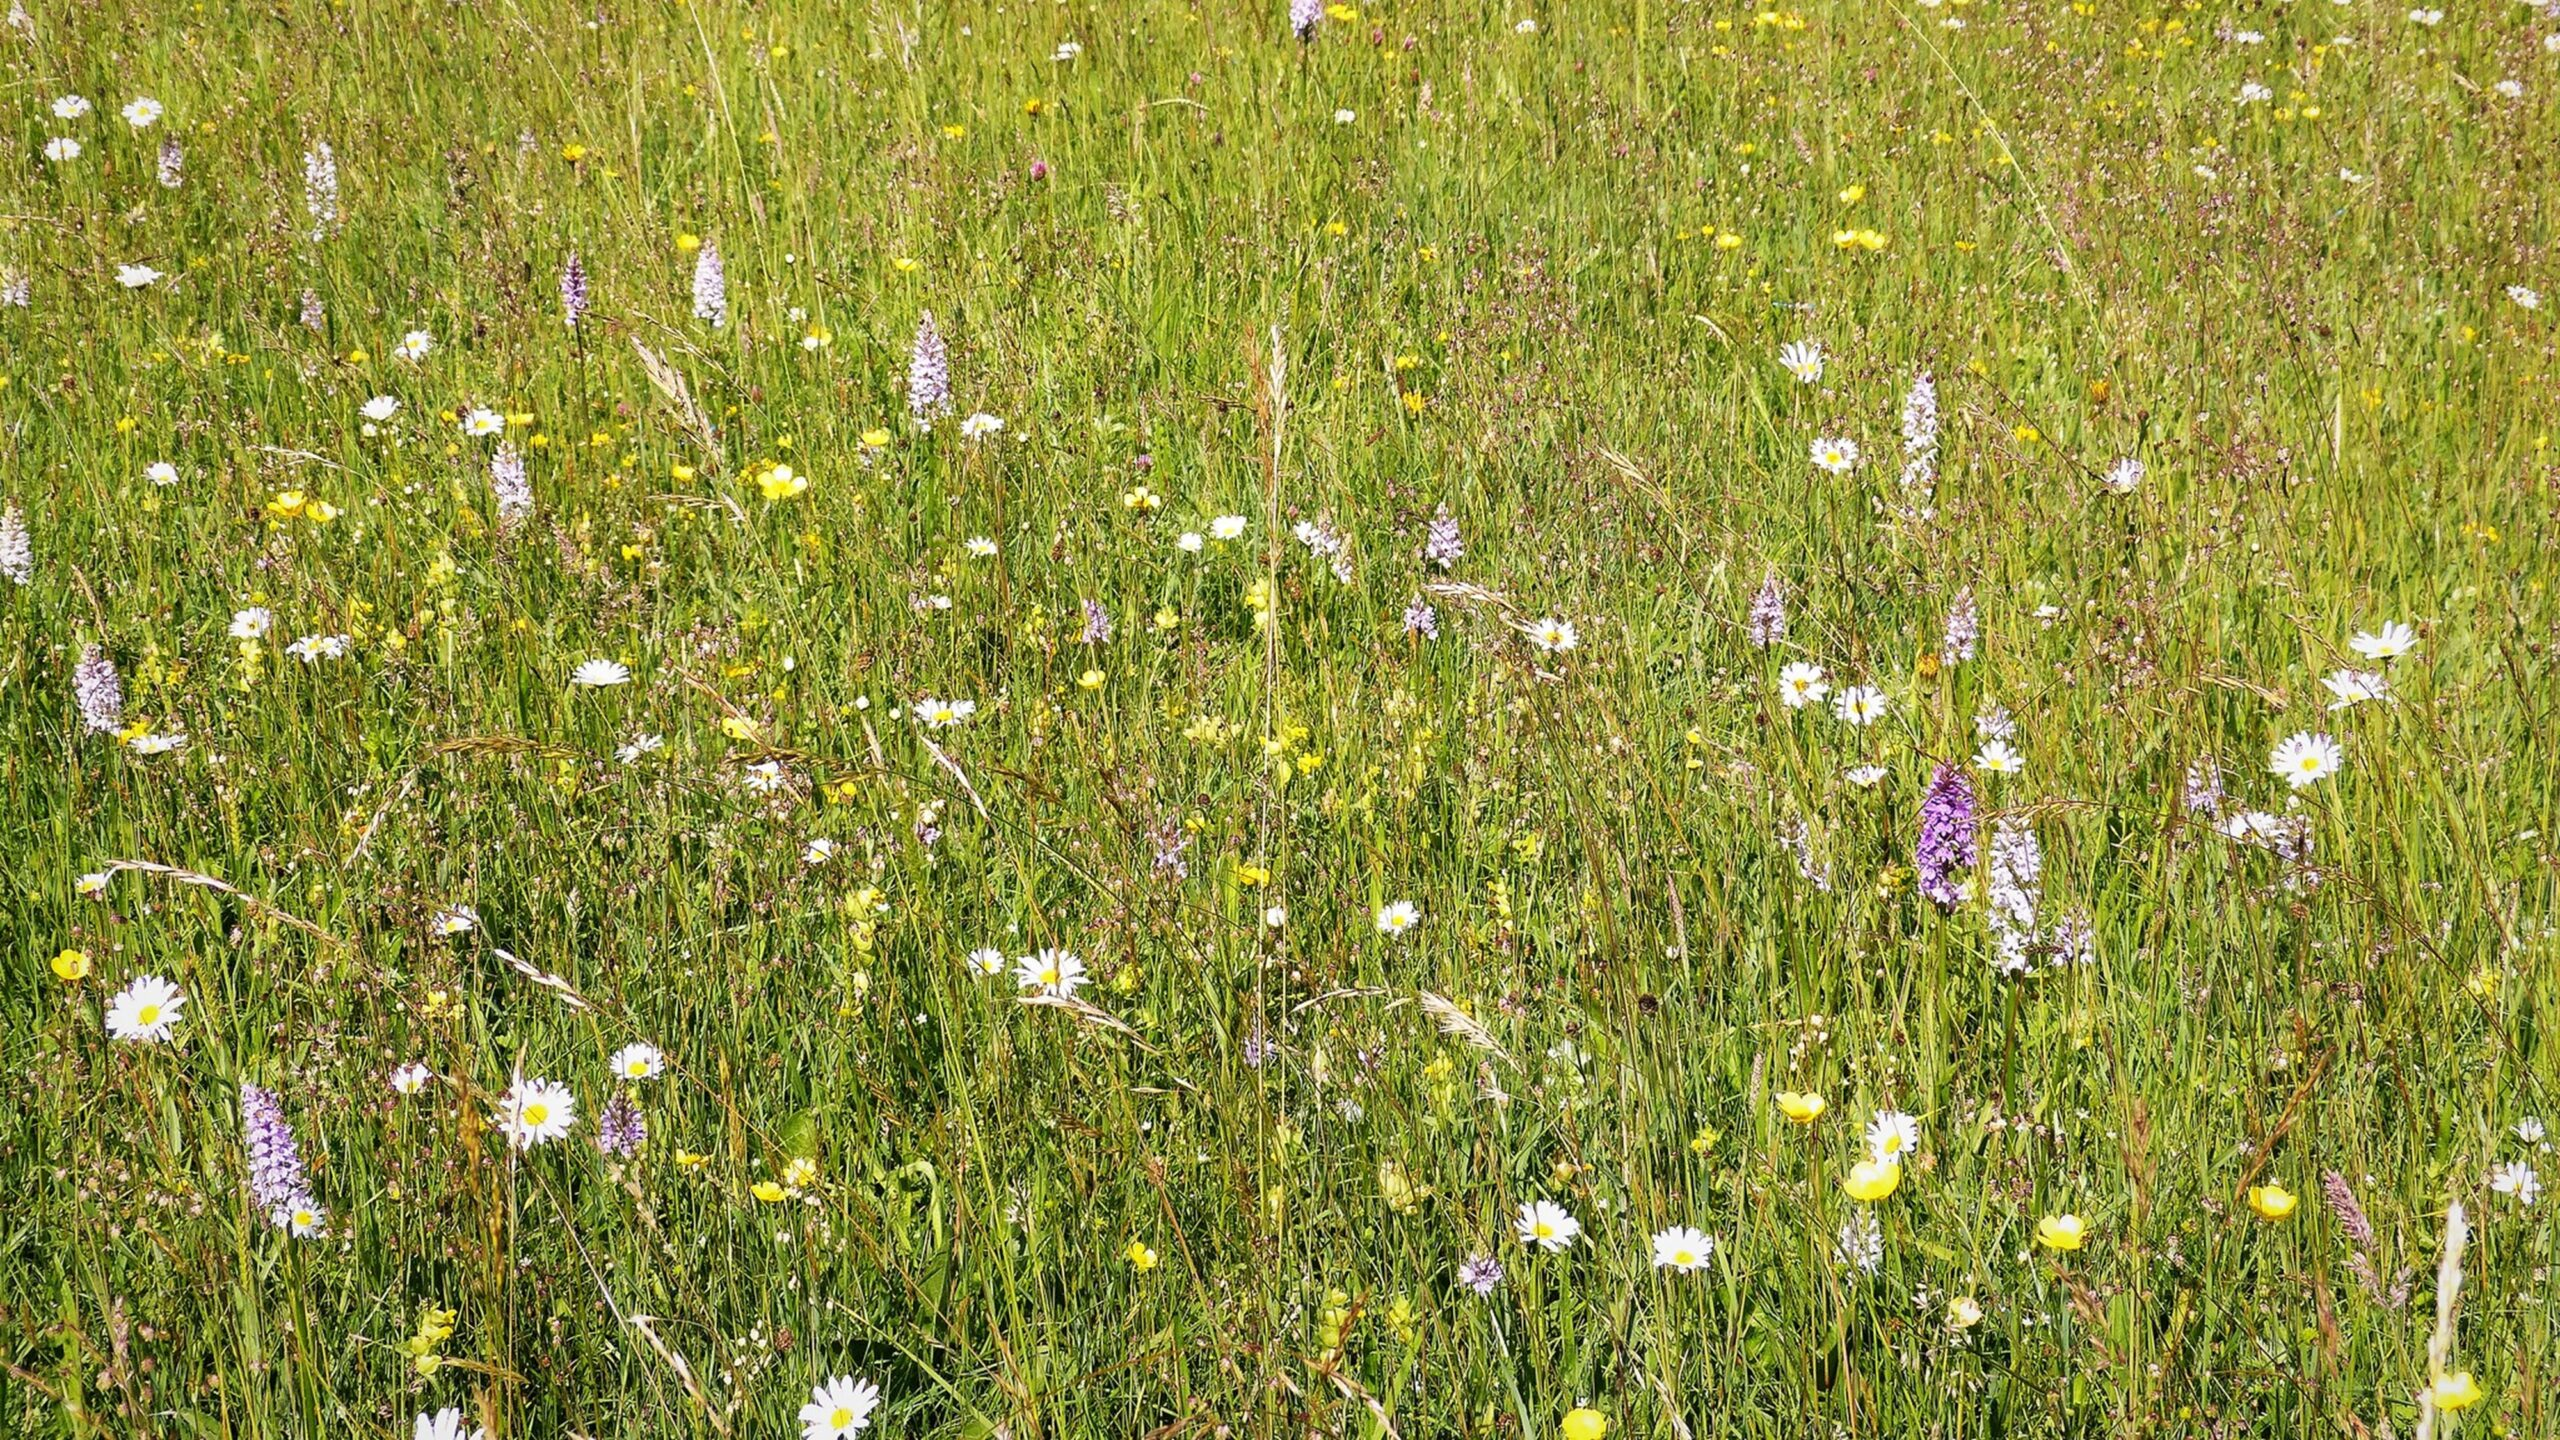 Unimproved Grass Meadow | Busy Bees at work: and other pollinators in our landscape